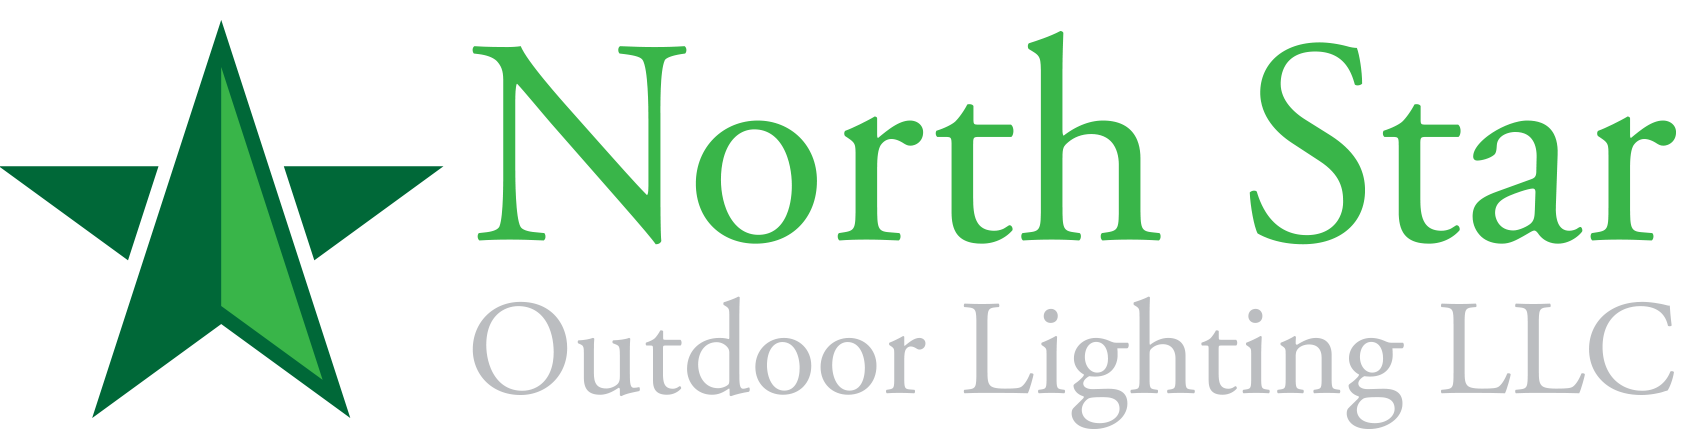 Homepage North Star Outdoor Lighting Llc